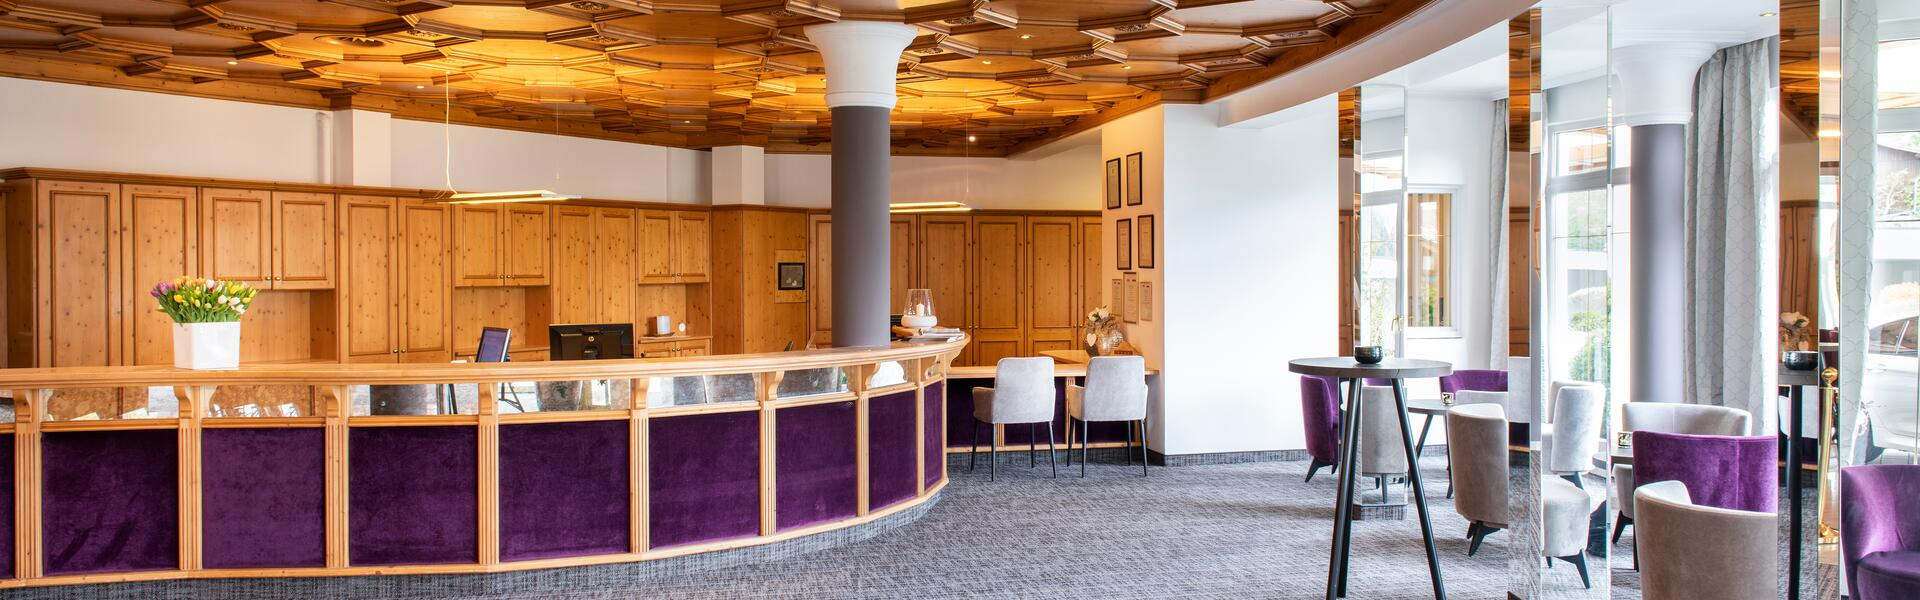 empfang hotel seehof walchsee